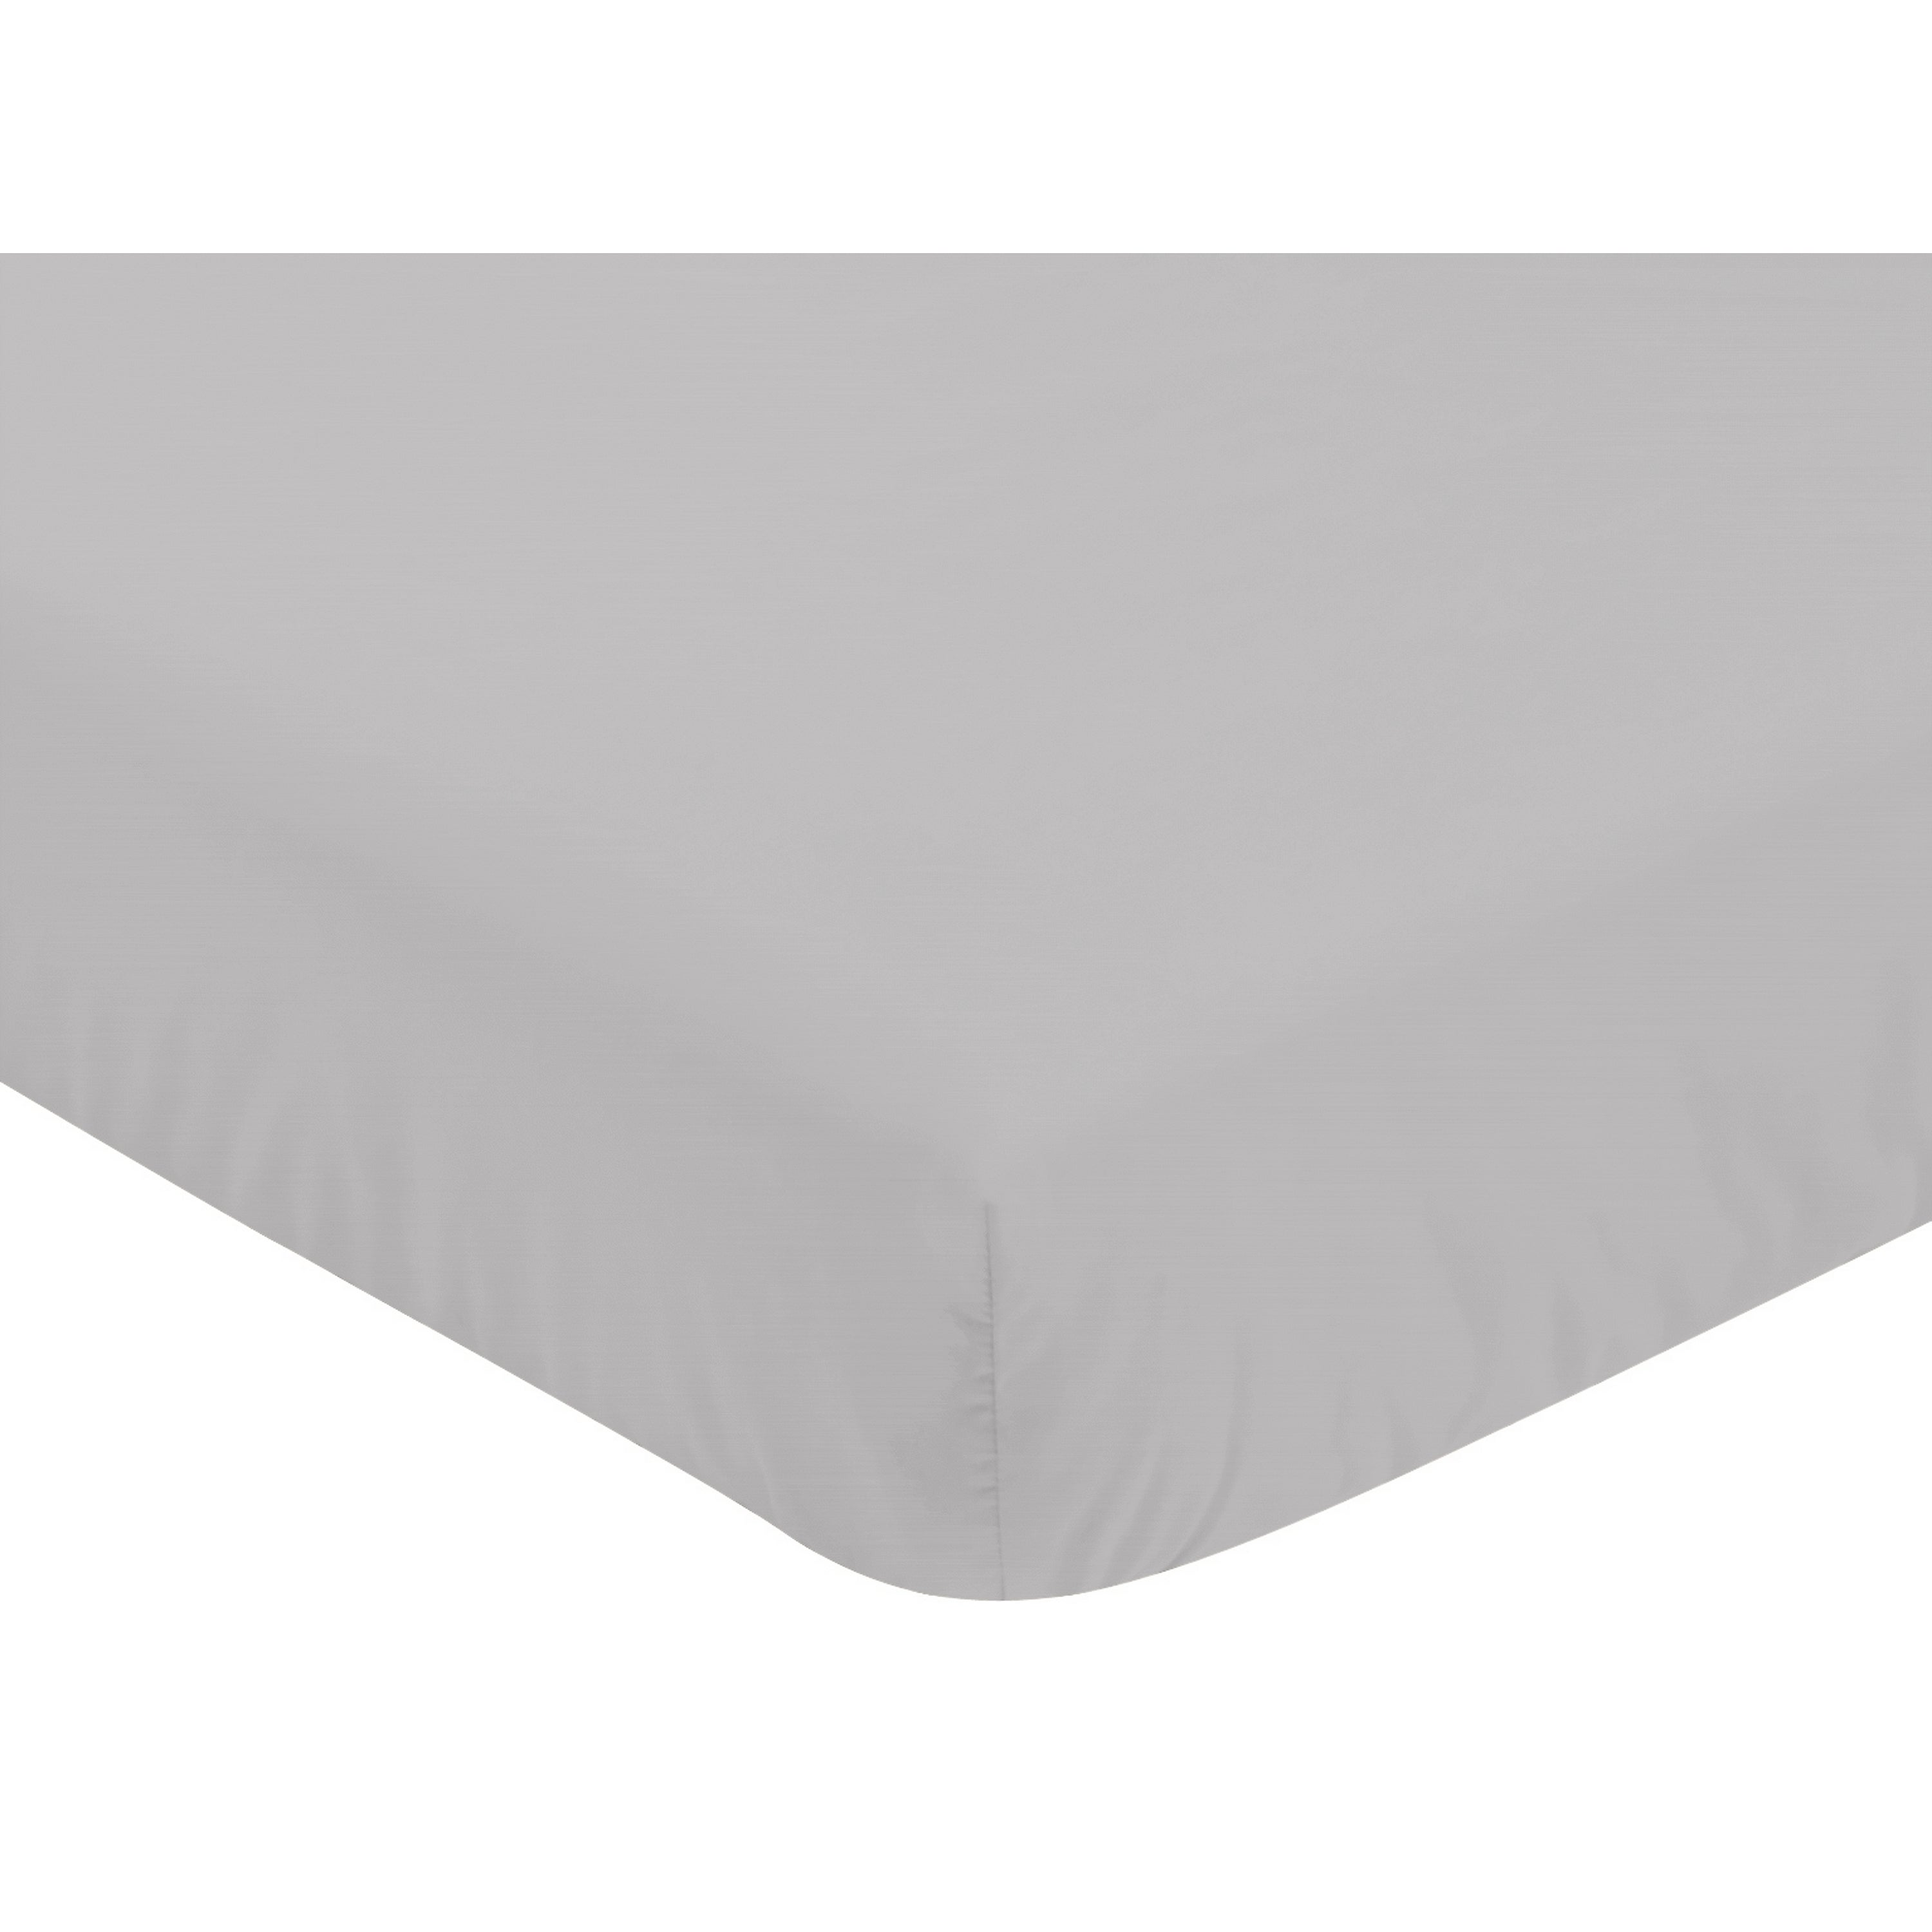 JoJo Designs Fitted Crib Sheet for Grey, Coral and Mint Woodland Arrow Baby/Toddler Bedding Set Collection - Grey